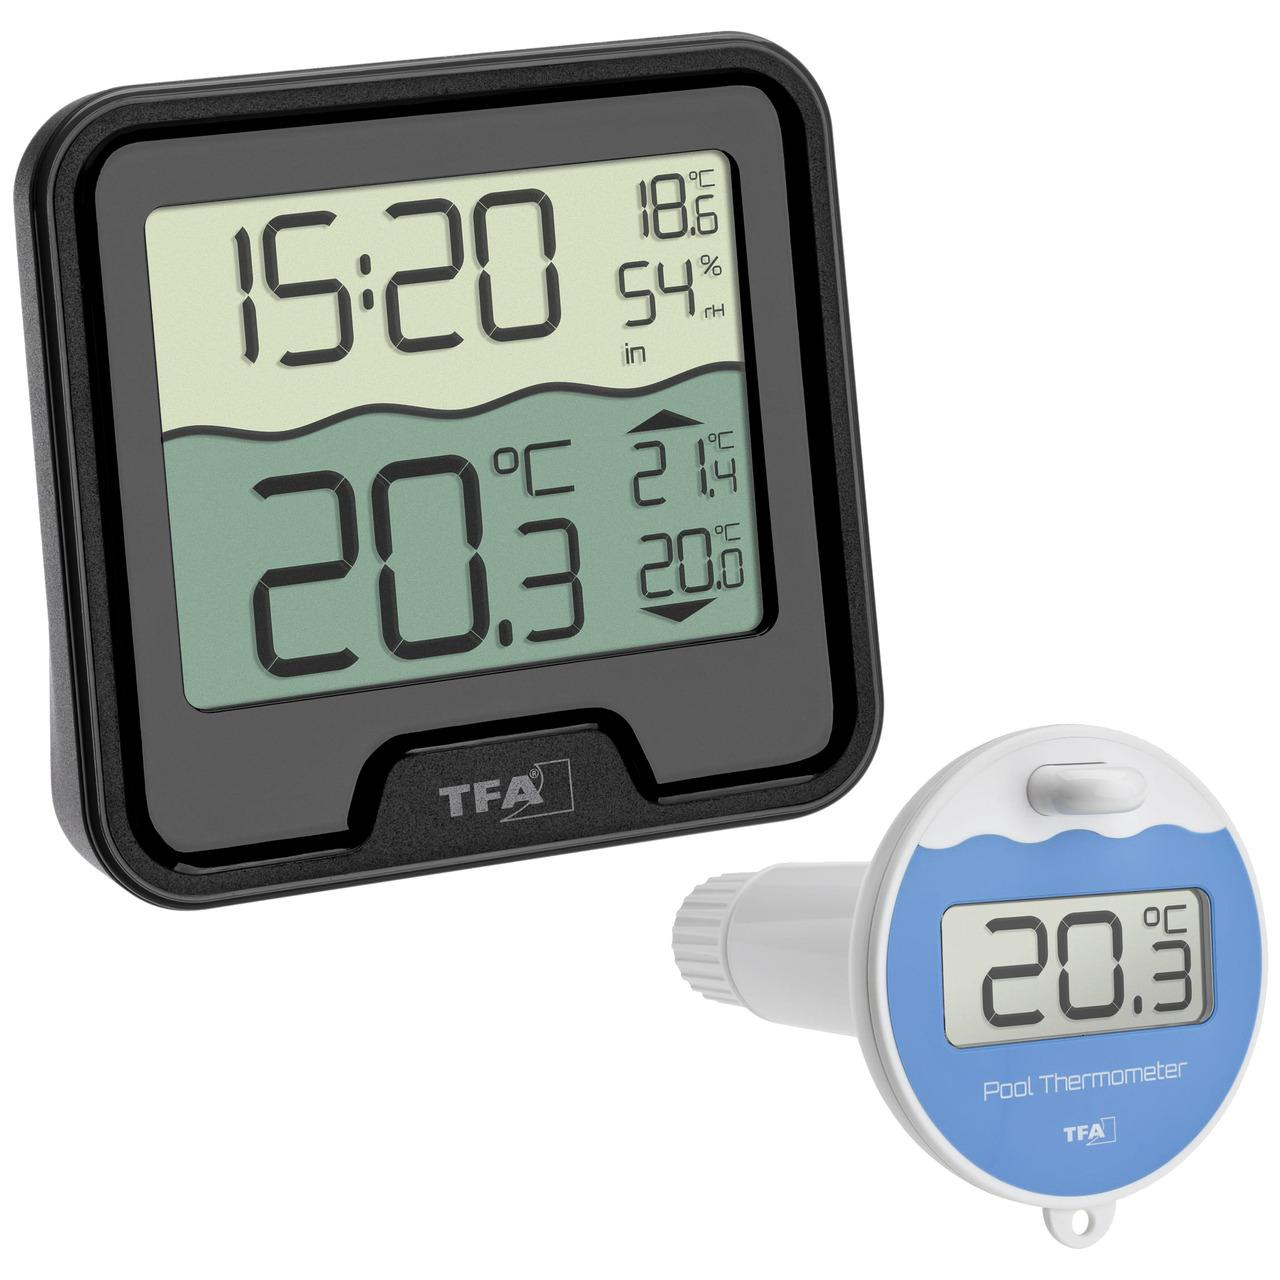 TFA Funk-Poolthermometer MARBELLA, Thermo-/Hygrometer-Basisstation, 868 MHz